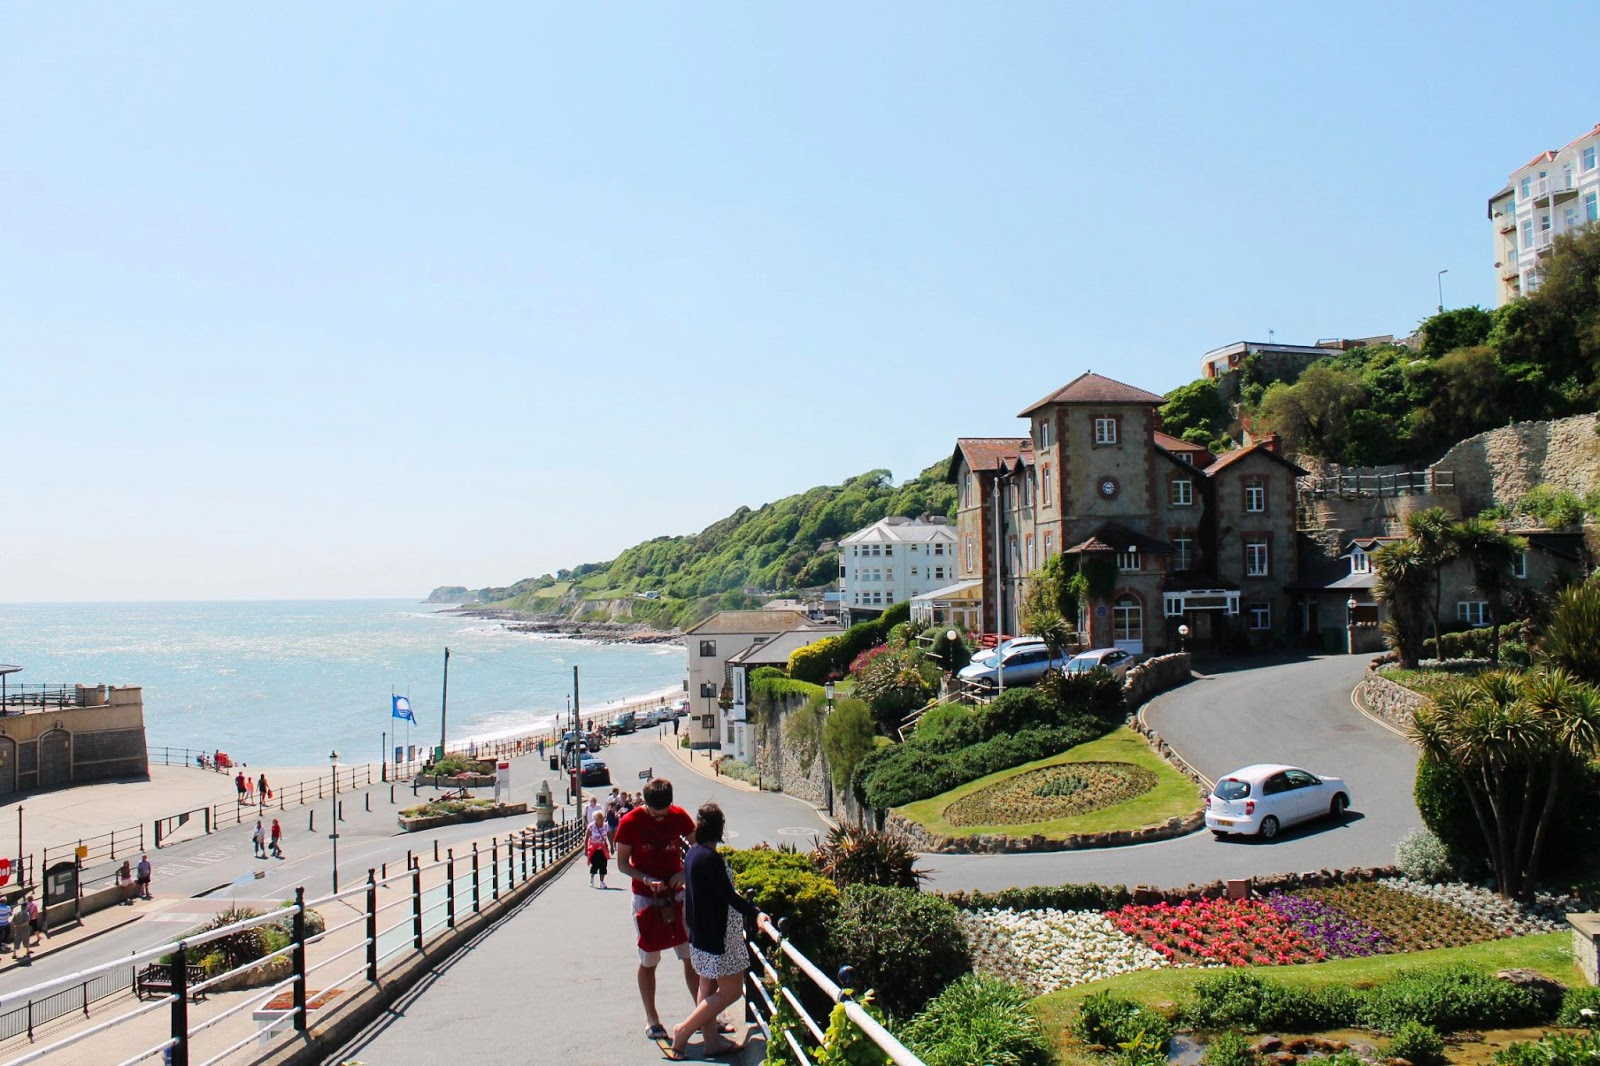 isle of wight ventnor haven town seaside view